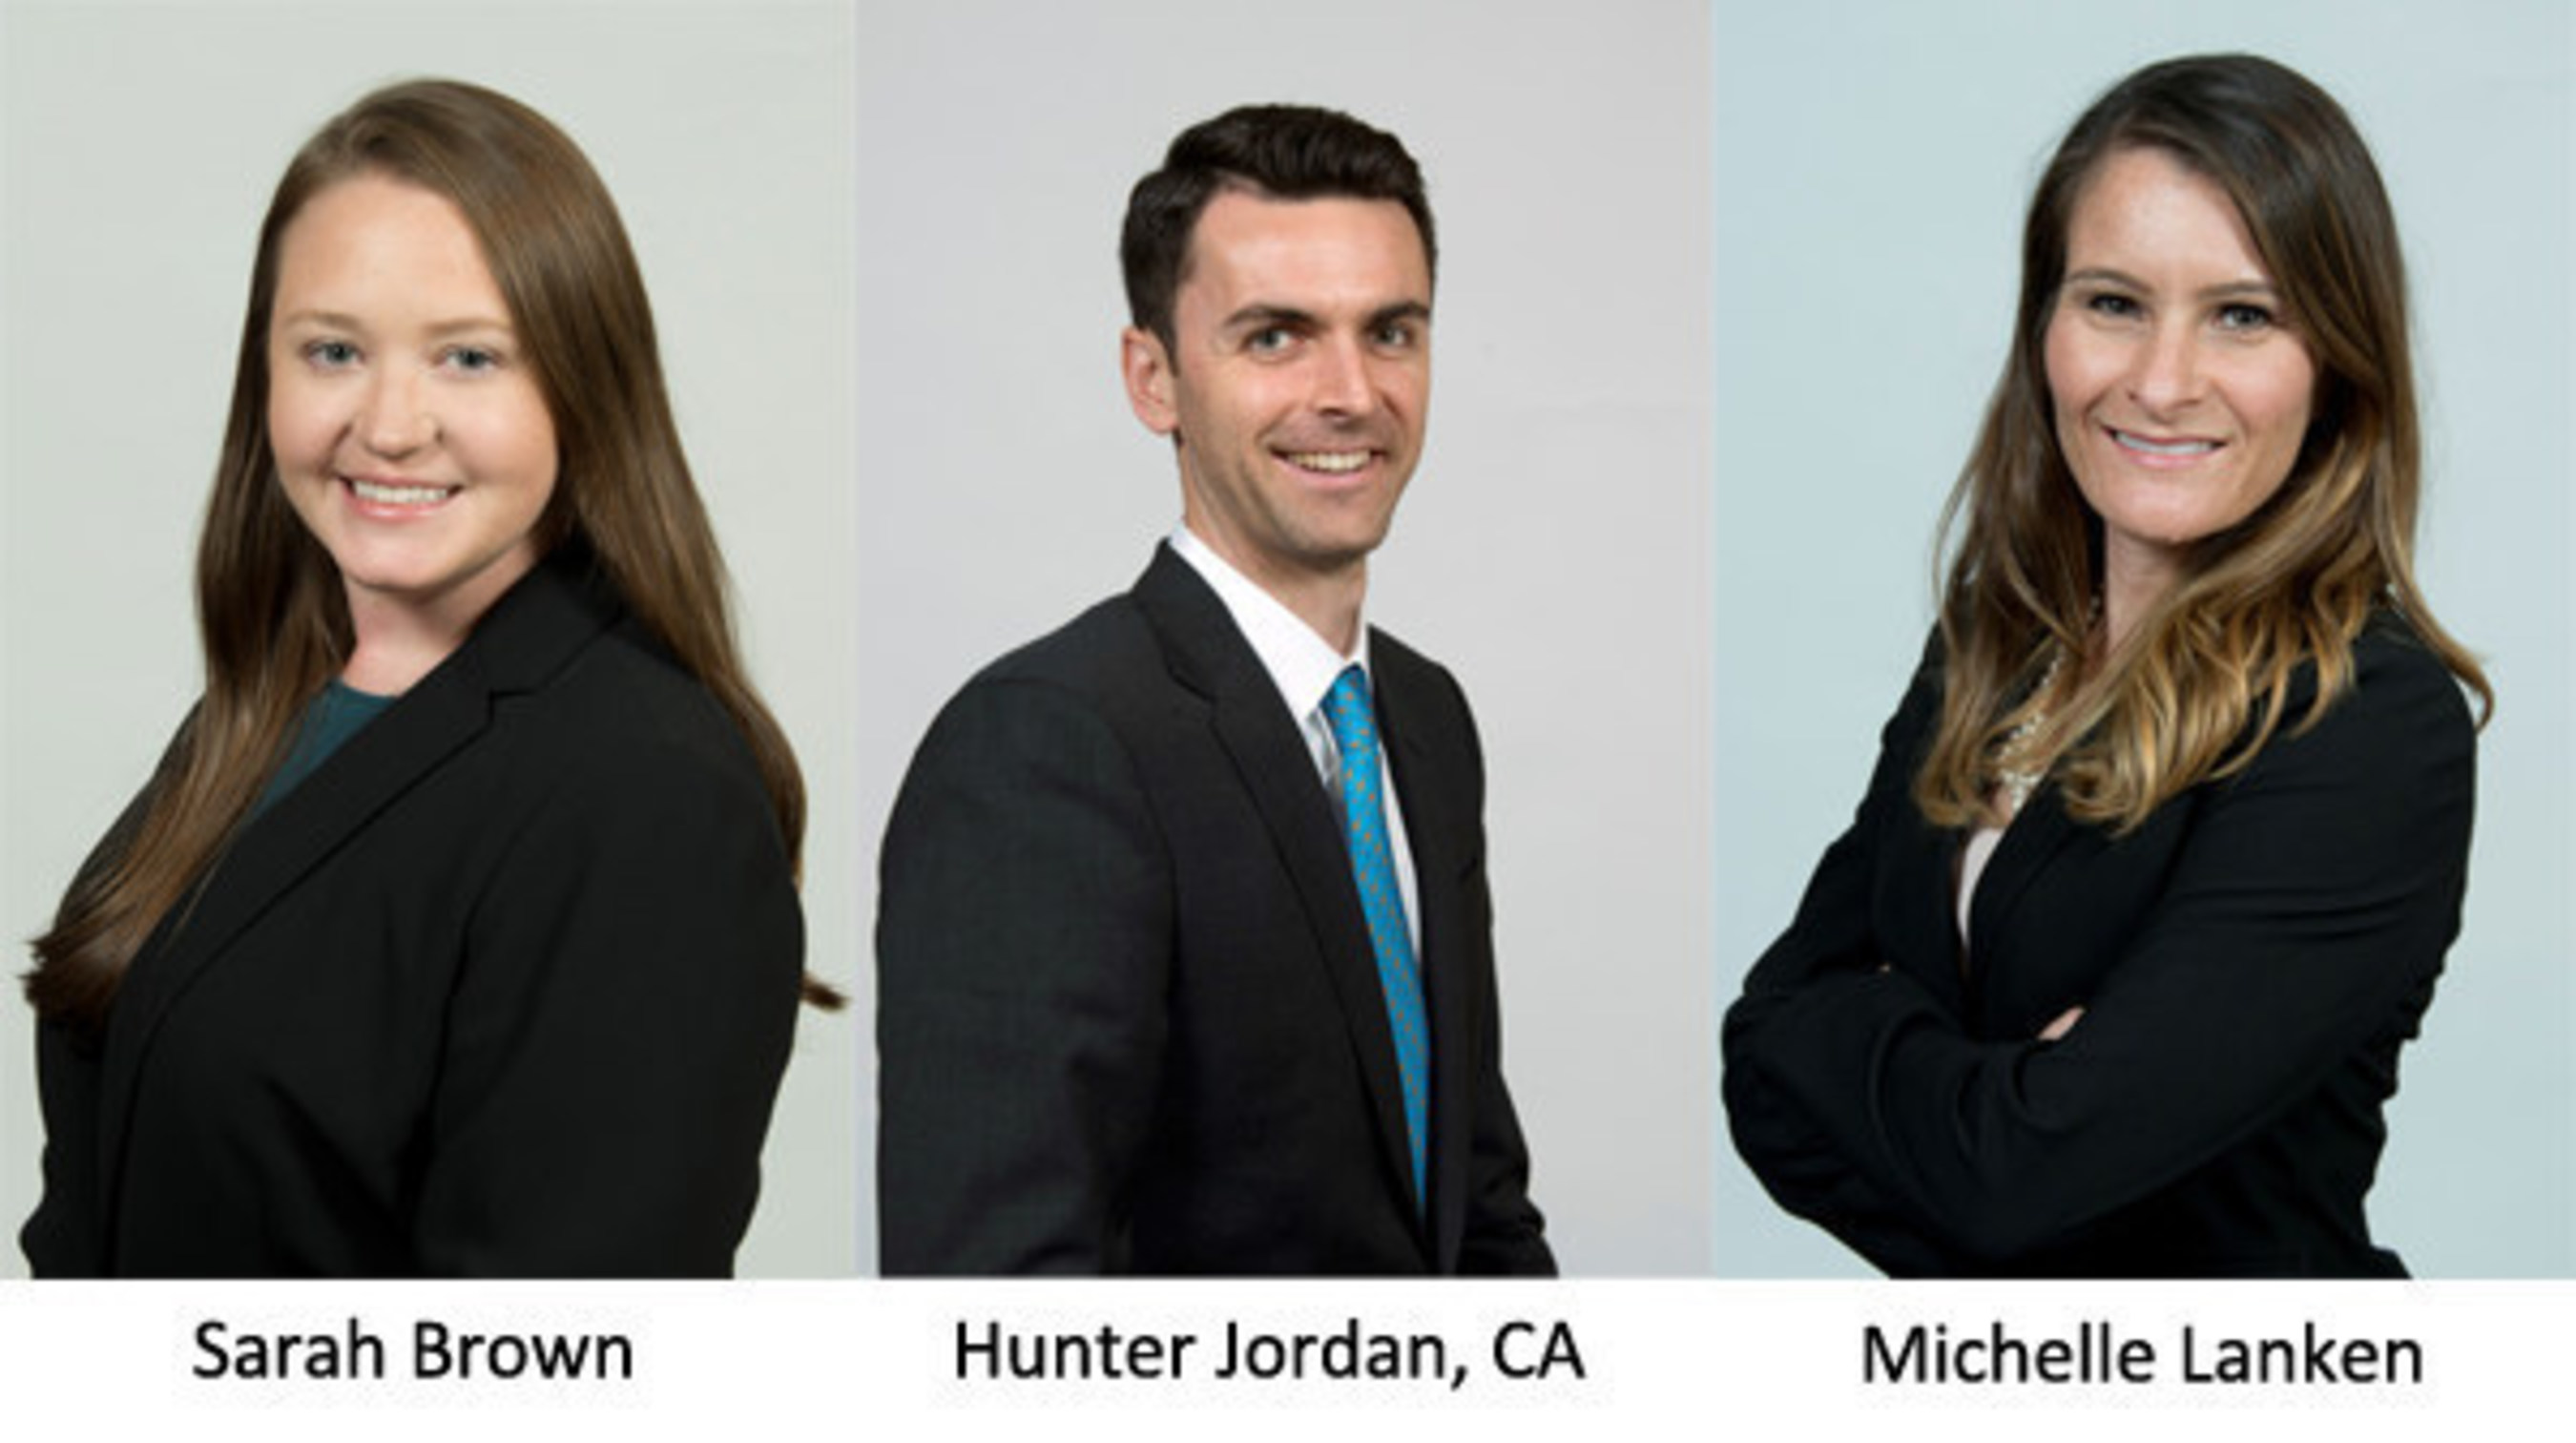 The Siegfried Group, LLP Welcomes New Professionals from the Northeast Region for New Hire